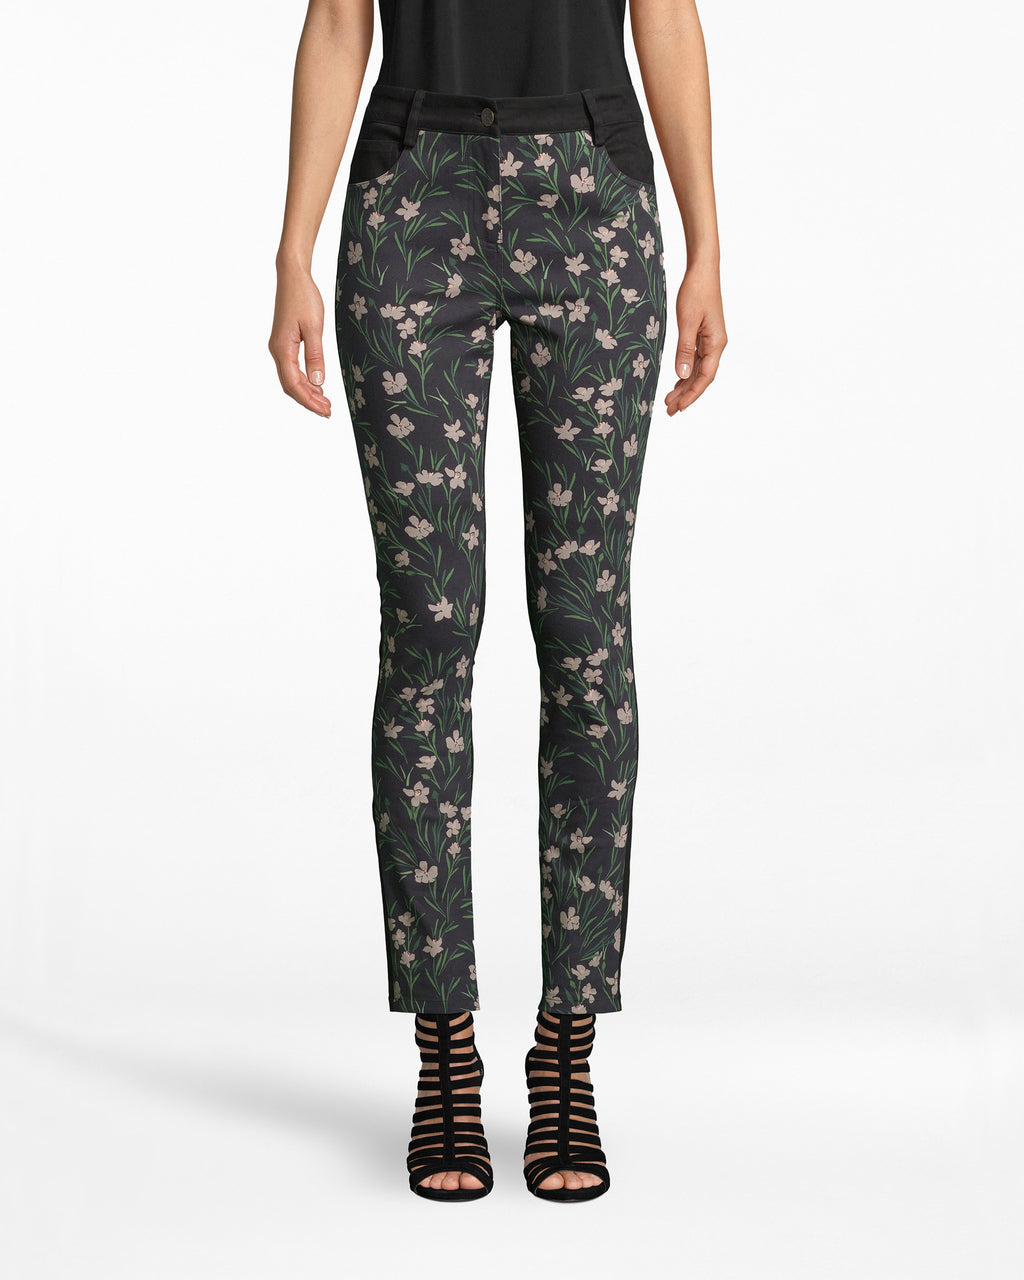 BE10384 - FLOWER PATCH DENIM SKINNY PANT - bottoms - pants - Flower Power Pants. These skinny denim are growing our Flower Patch print on the front and a simple black hue on the back. Pair with our Flower Patch Denim Oversized Jacket.